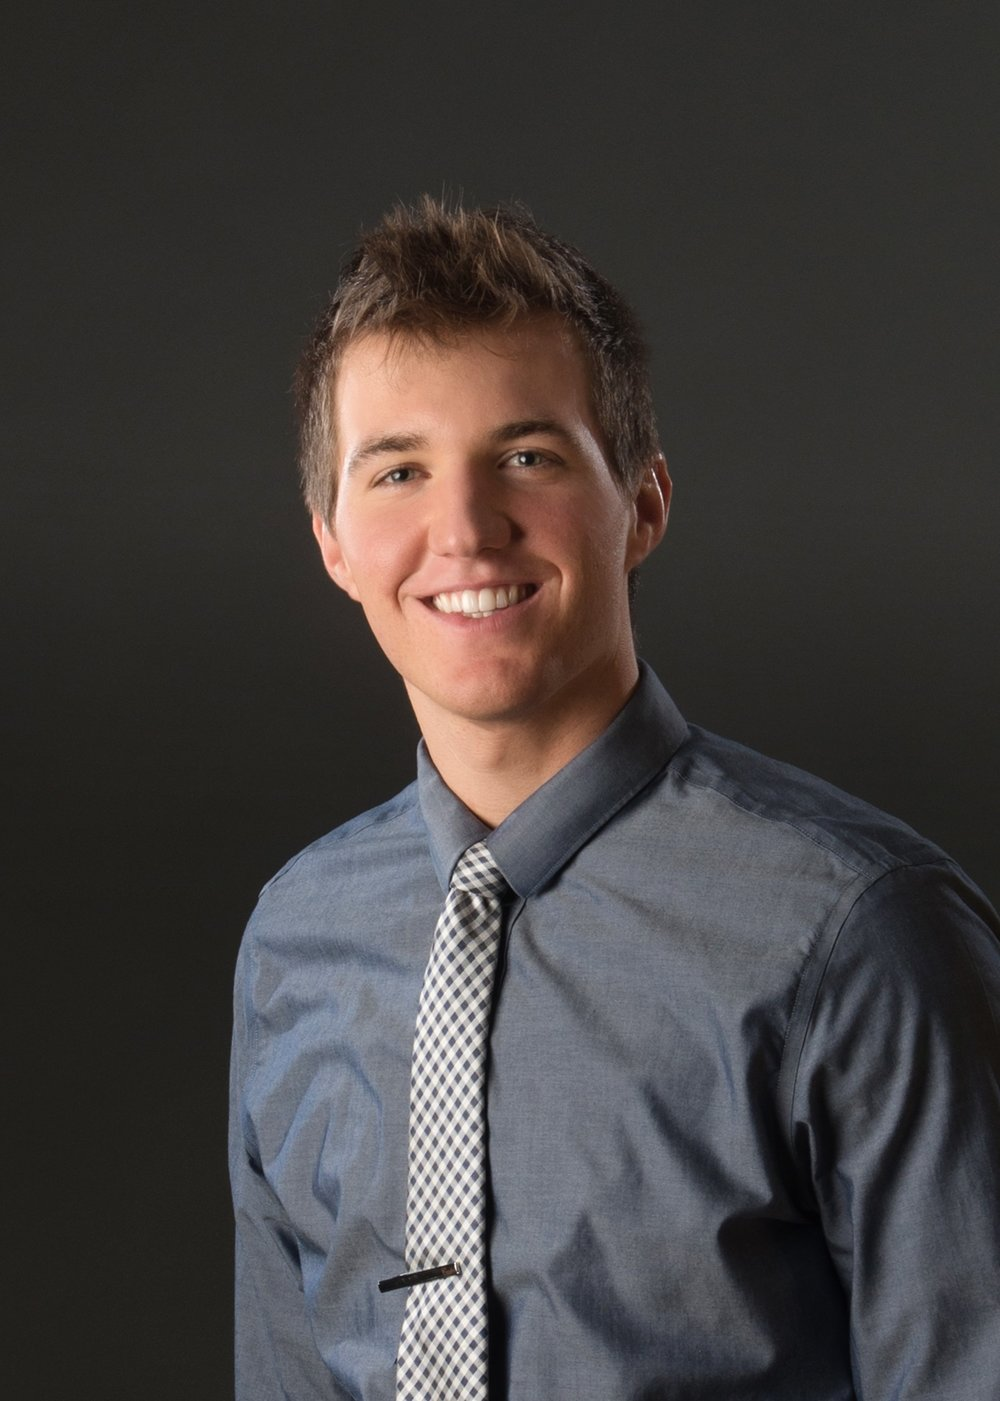 Michael Custer  - Michael is a team member of Custer Financial Advisors.  He graduated from Hope College and specializes in working with millennials and former athletes, as he used to play Quarterback in college. To learn more about Michael, visit Custer Financial Advisors or email him.